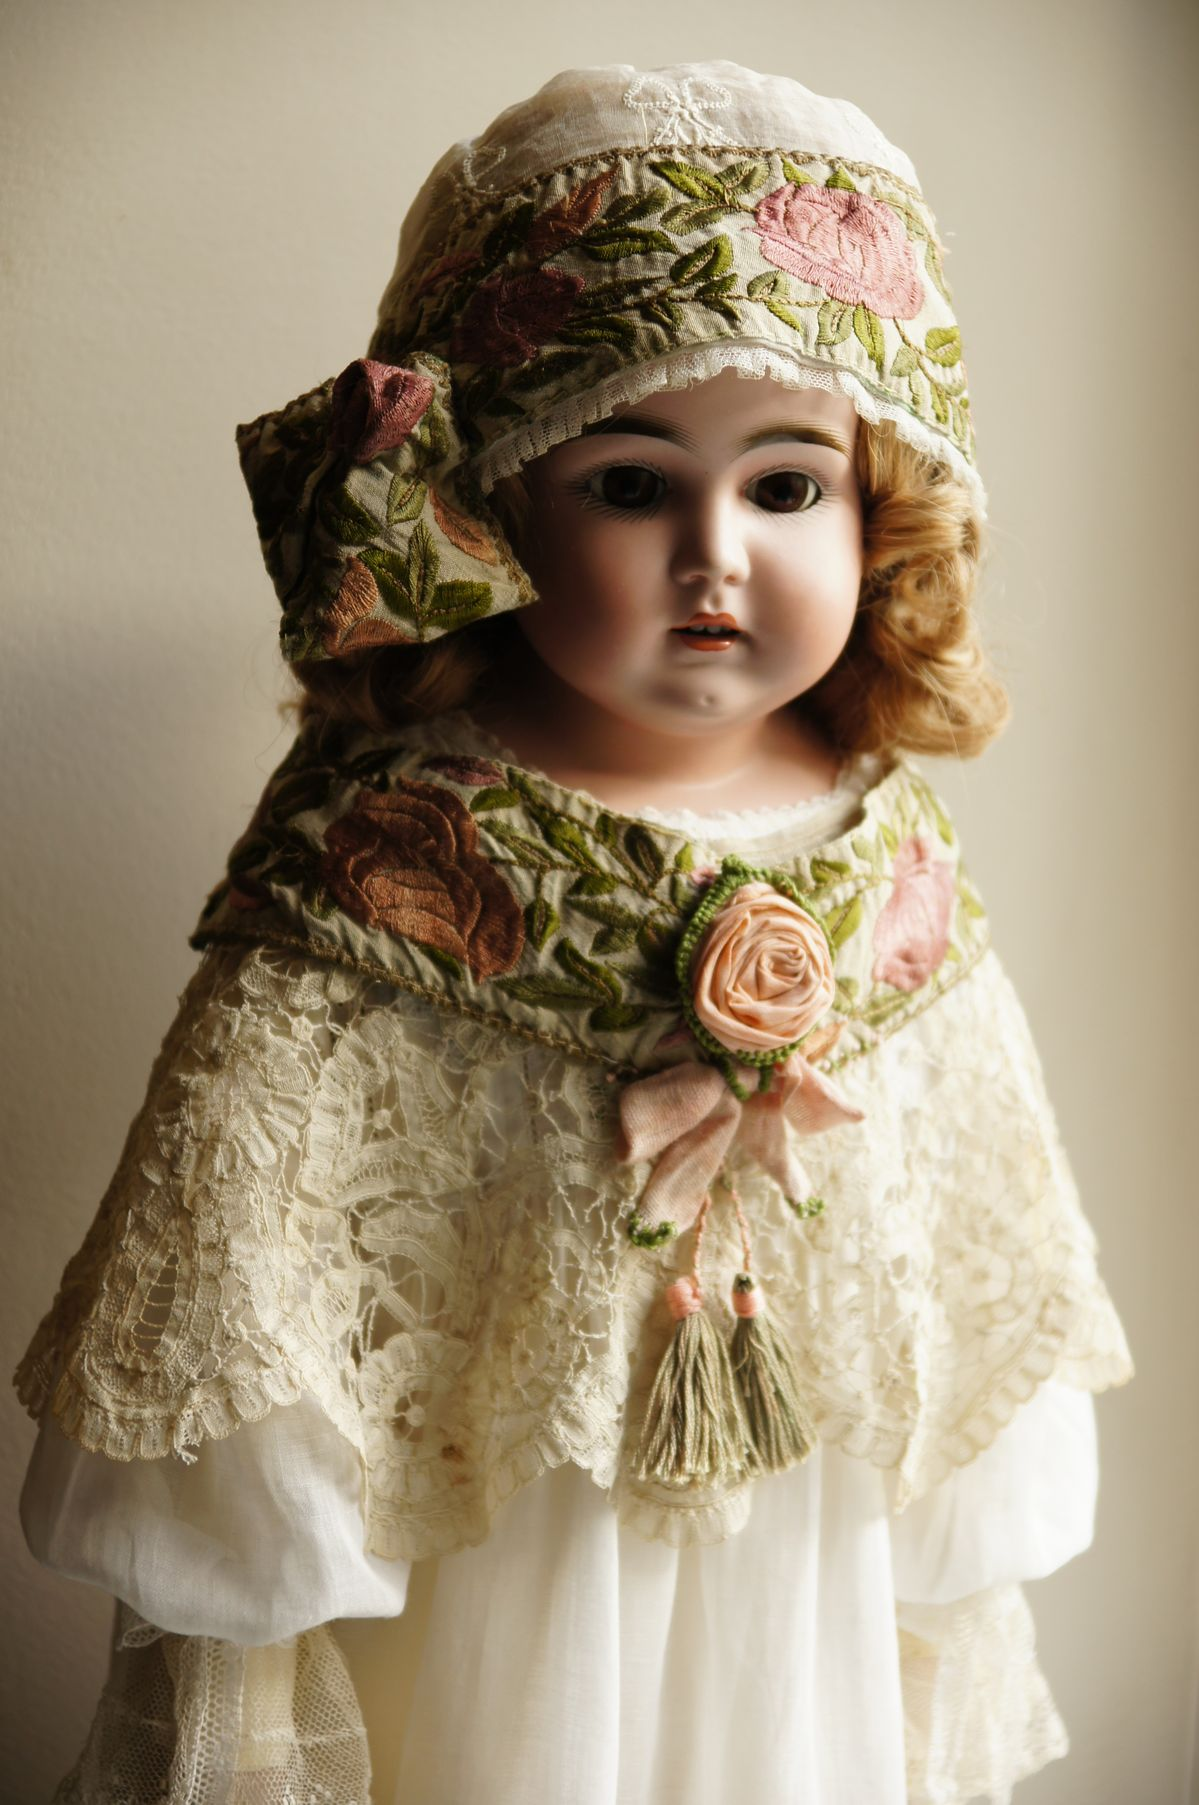 Antique dolls on pinterest antique dolls auction and for Pinterest dolls